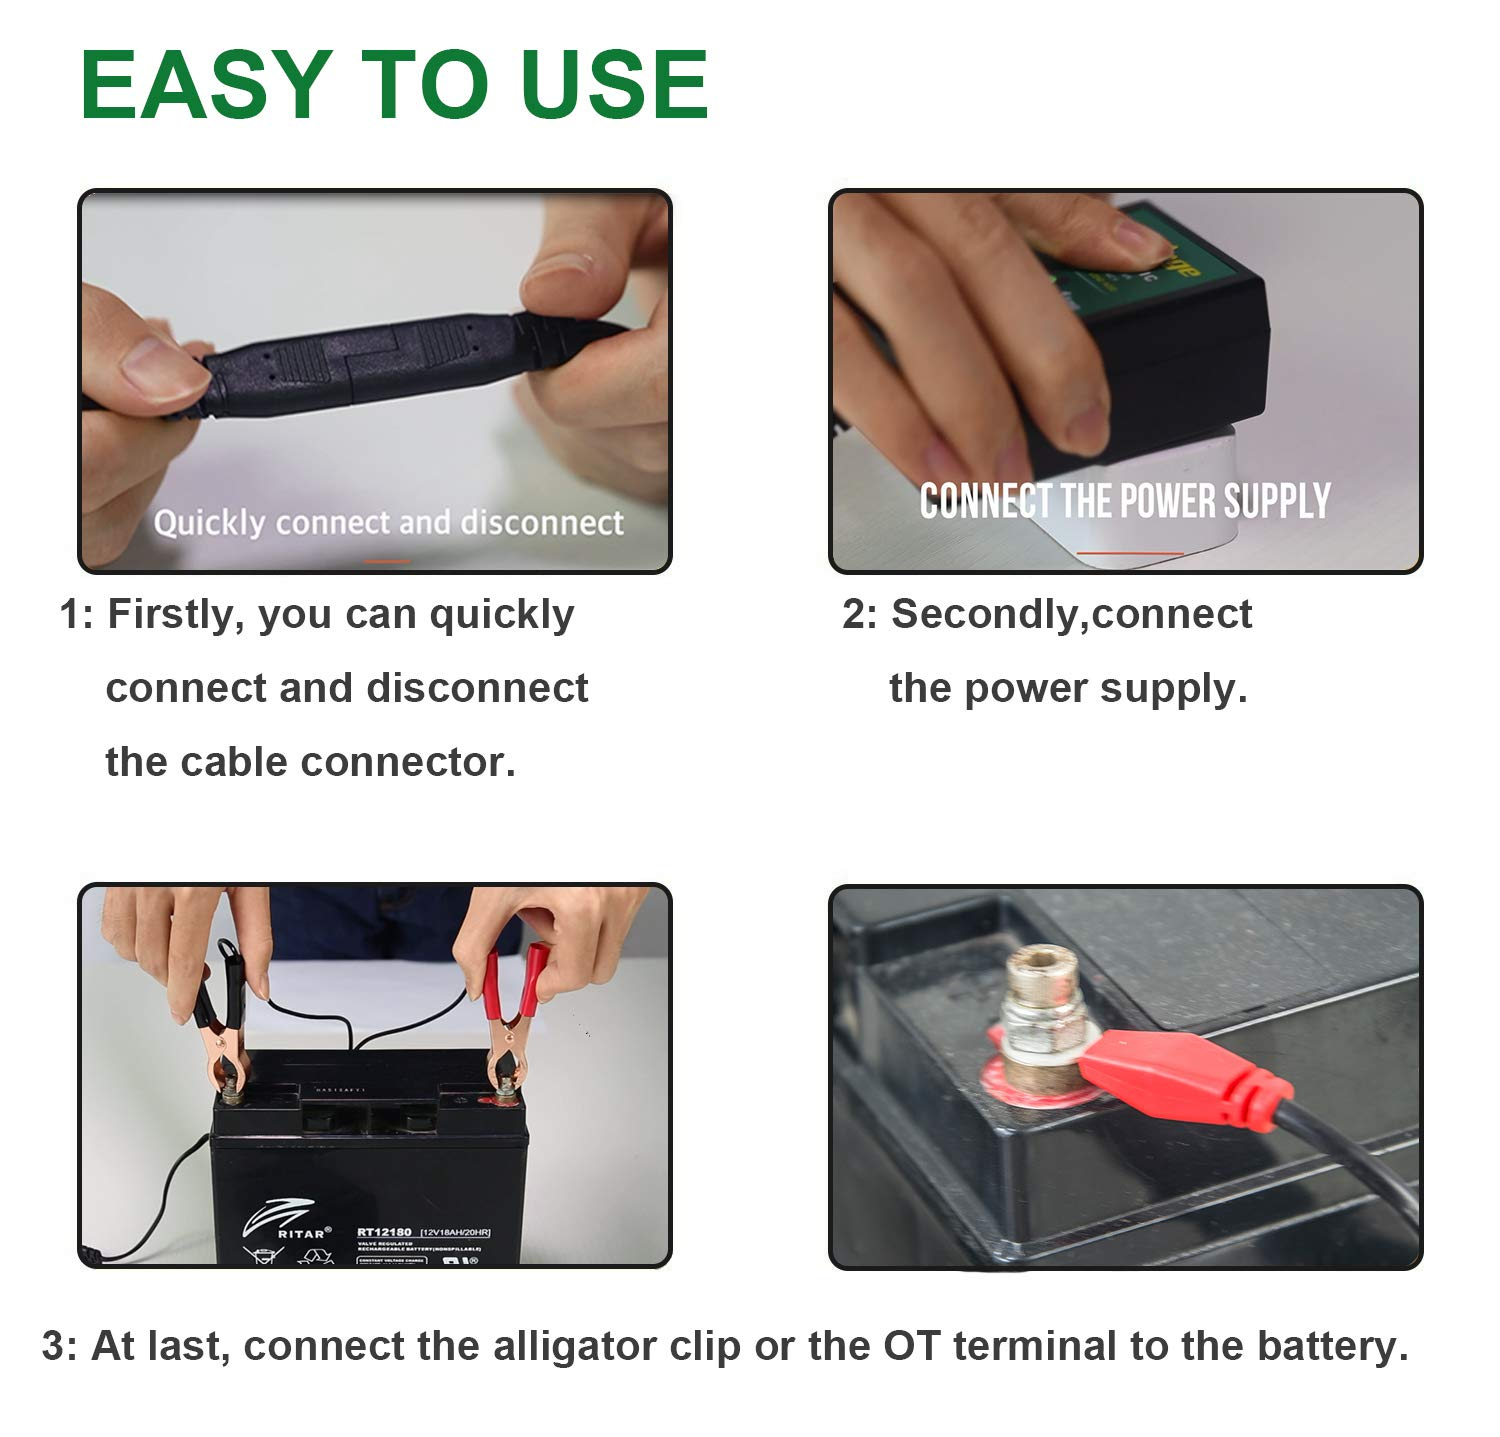 Mua Sn Phm Mroinge Mbc010 Automotive Trickle Maintainer 12v 1a 6v Car Battery Charger 750ma Lead Acid Smart Automatic For Motorcycle Boat Lawn Mower